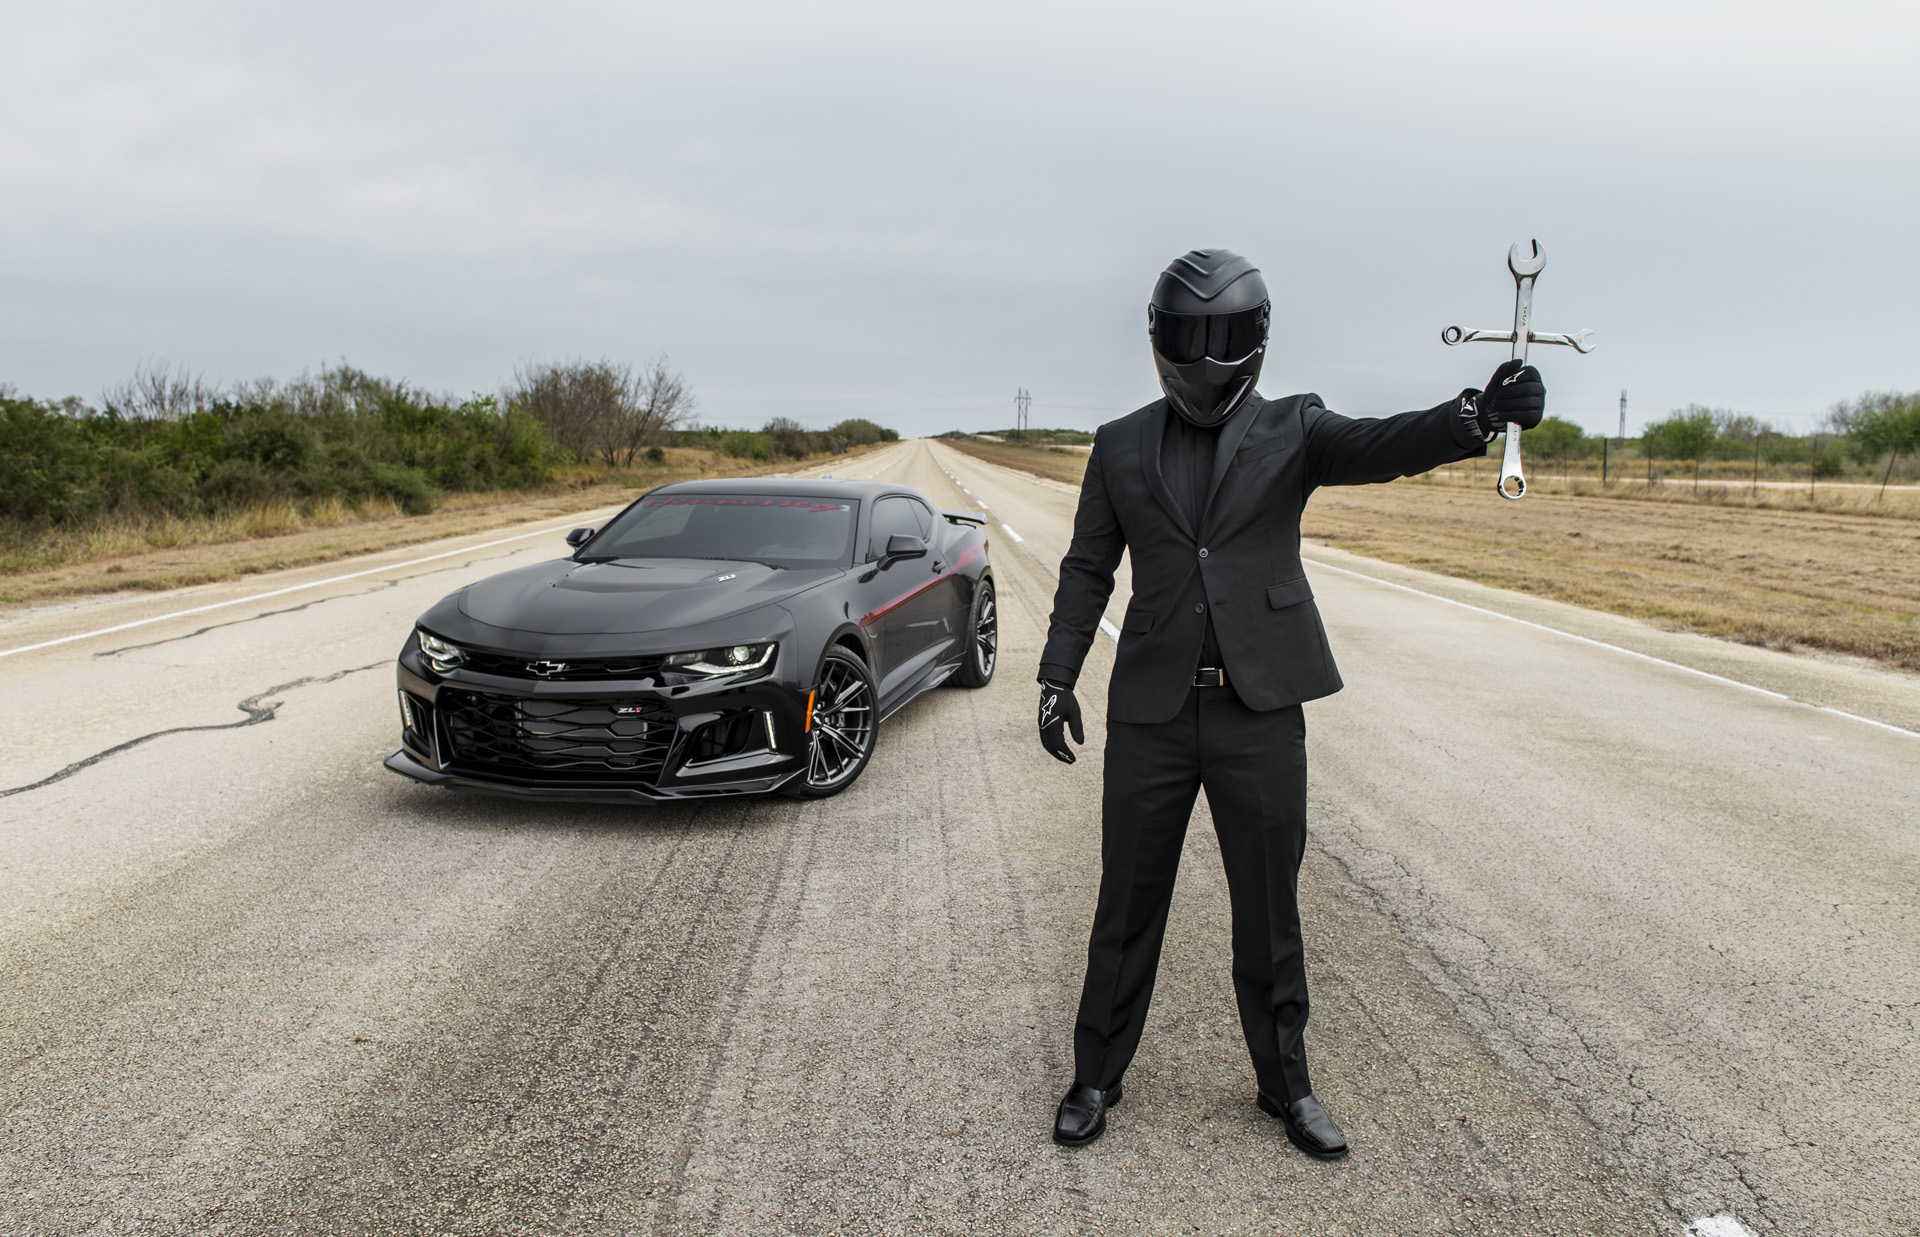 Hennessey Quot Exorcist Quot Camaro Zl1 Reaches Top Speed Of 217